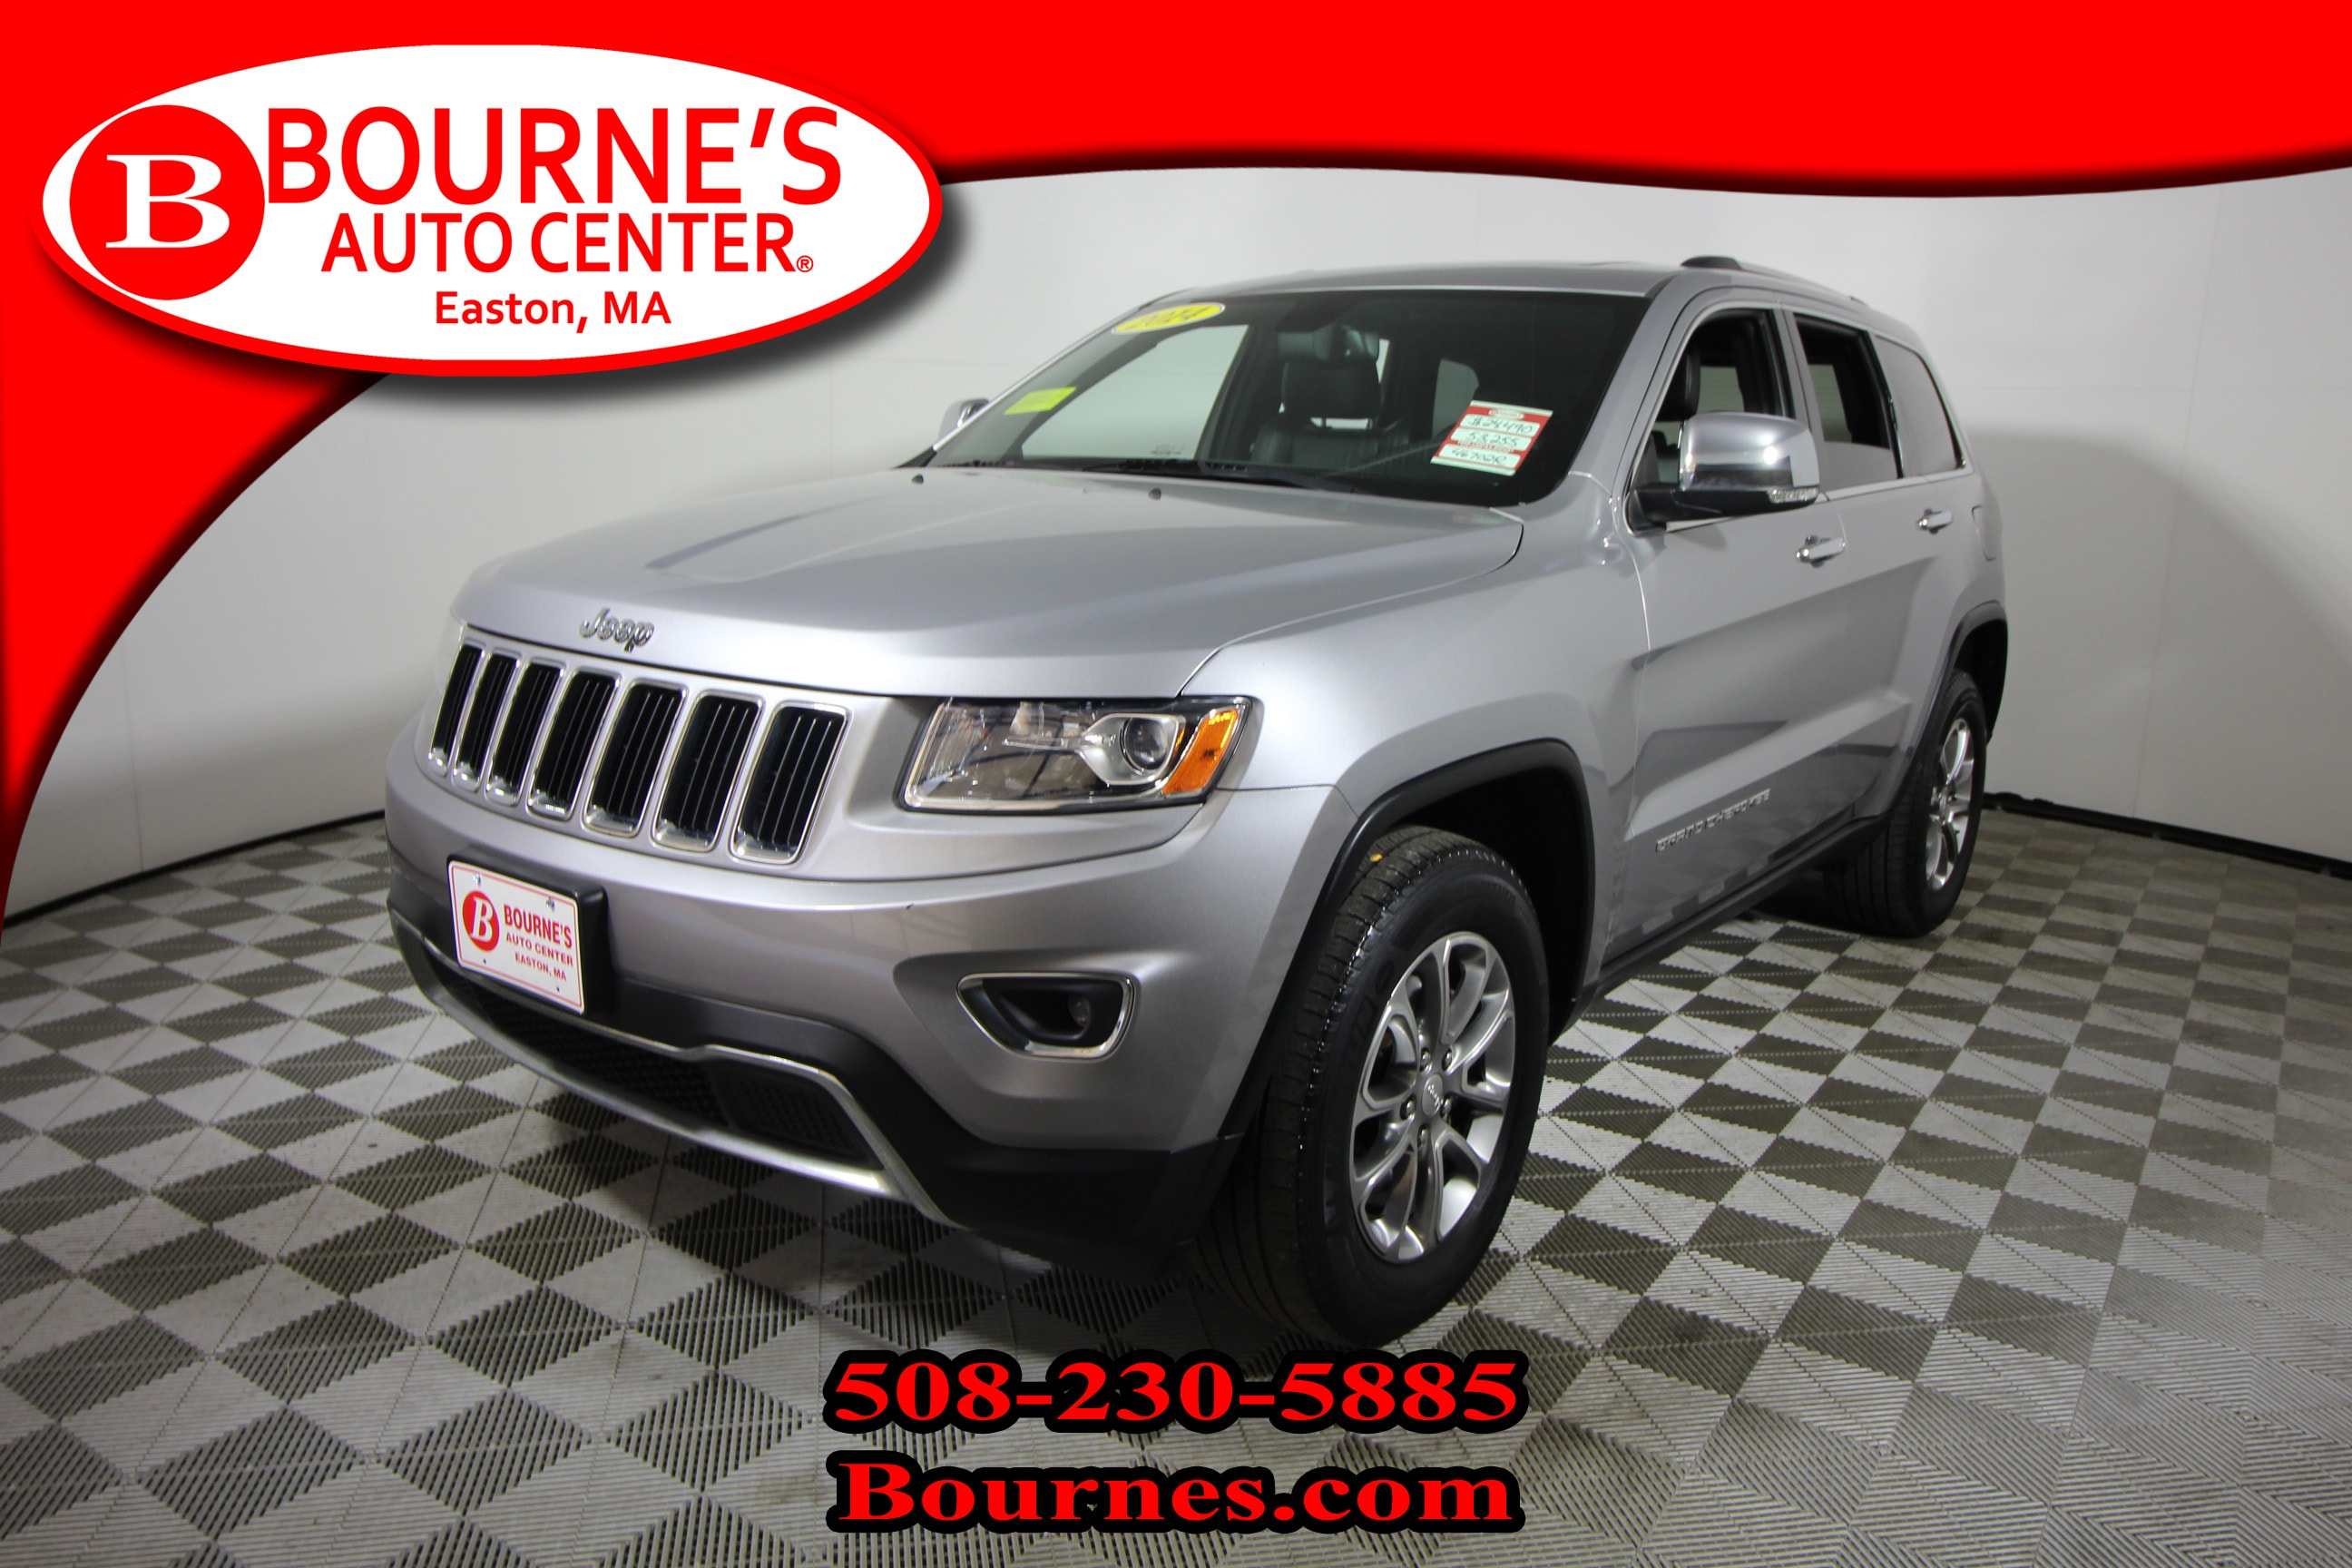 2014 Jeep Grand Cherokee Limited 4x4 w/Navigation, Leather, Sunroof, Heated SUV